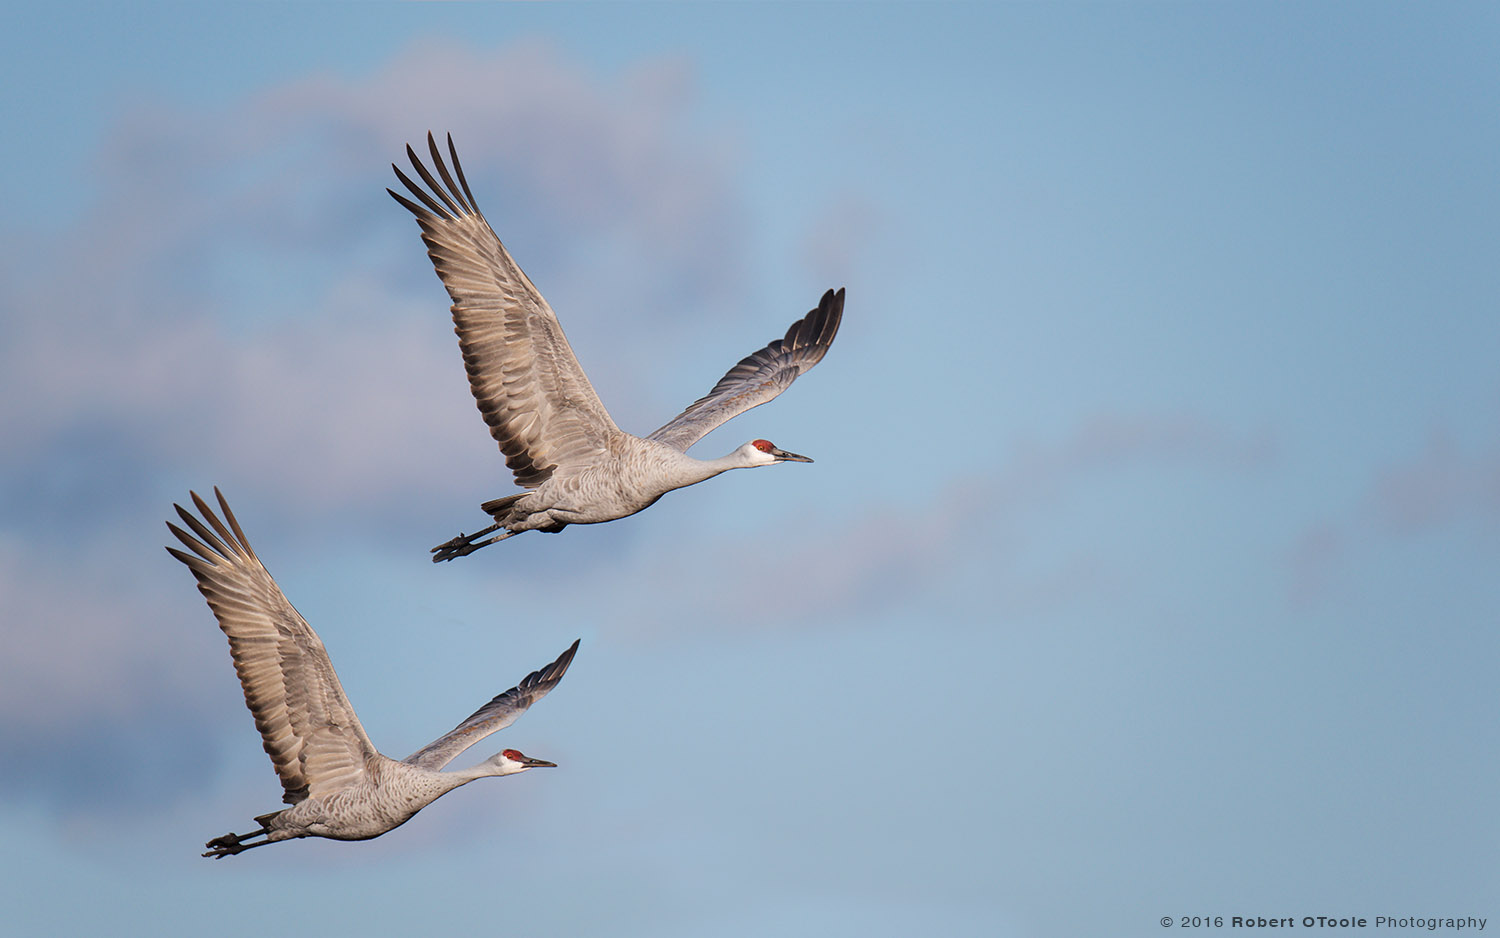 Pair of Sandhill Cranes Synchronized in Flight